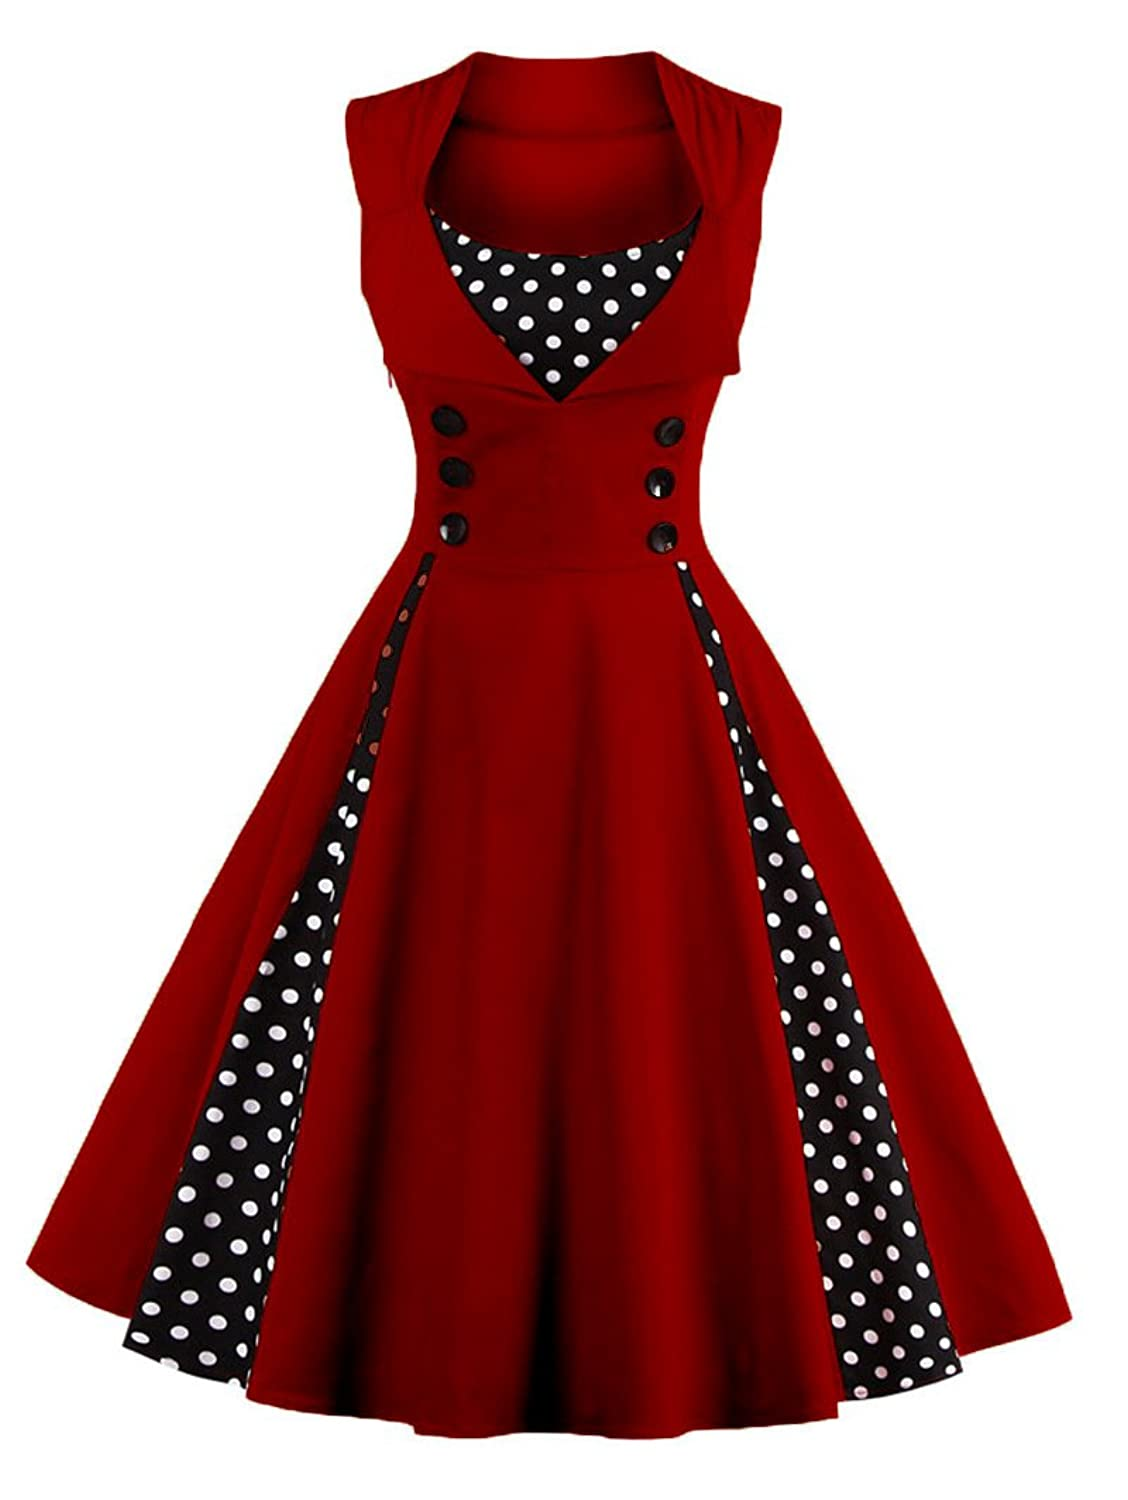 50s Costumes | 50s Halloween Costumes LUNAJANY Womens Rockabilly Vintage Polka Dot Pin up Swing Cocktail Party Dress $24.59 AT vintagedancer.com